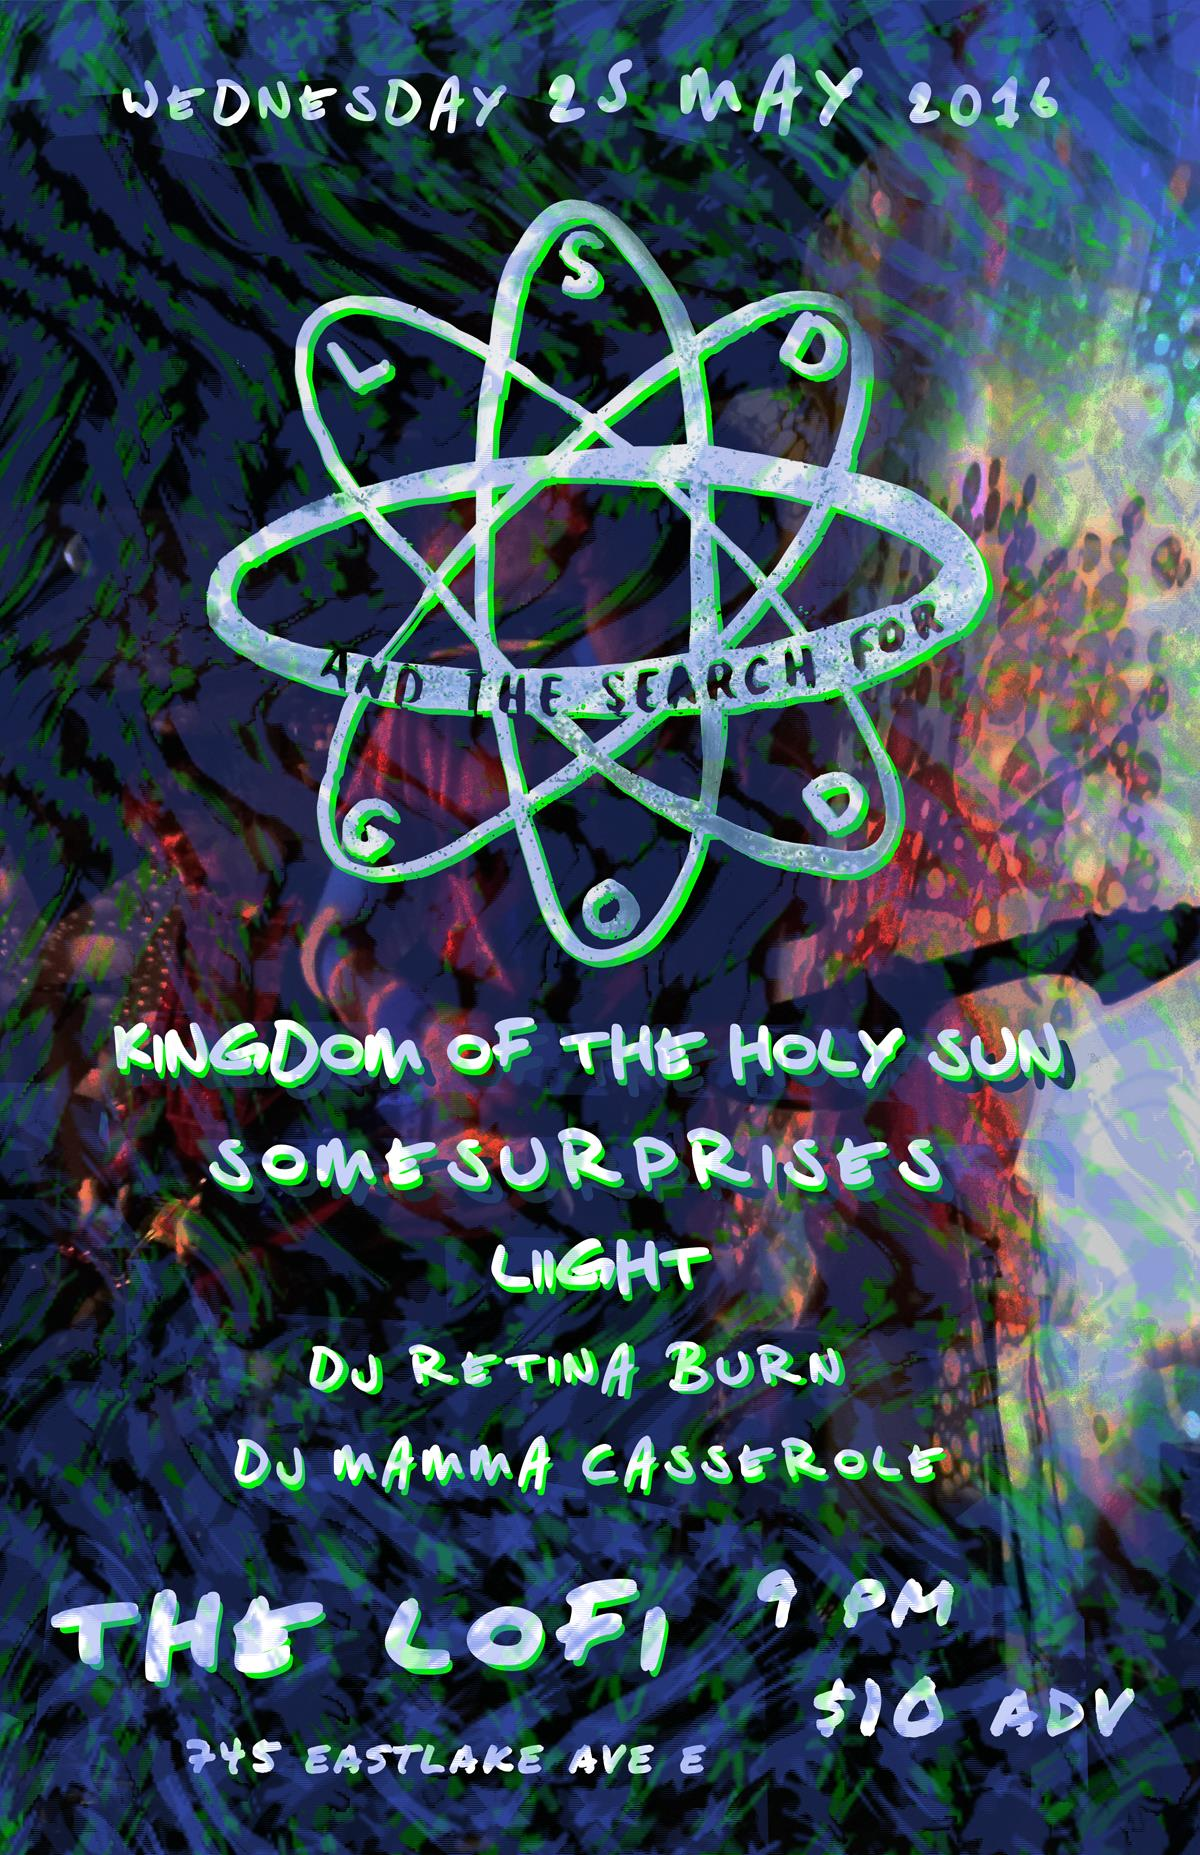 LSD and the Search For God, DJ Retina Burn - 25 May 2016